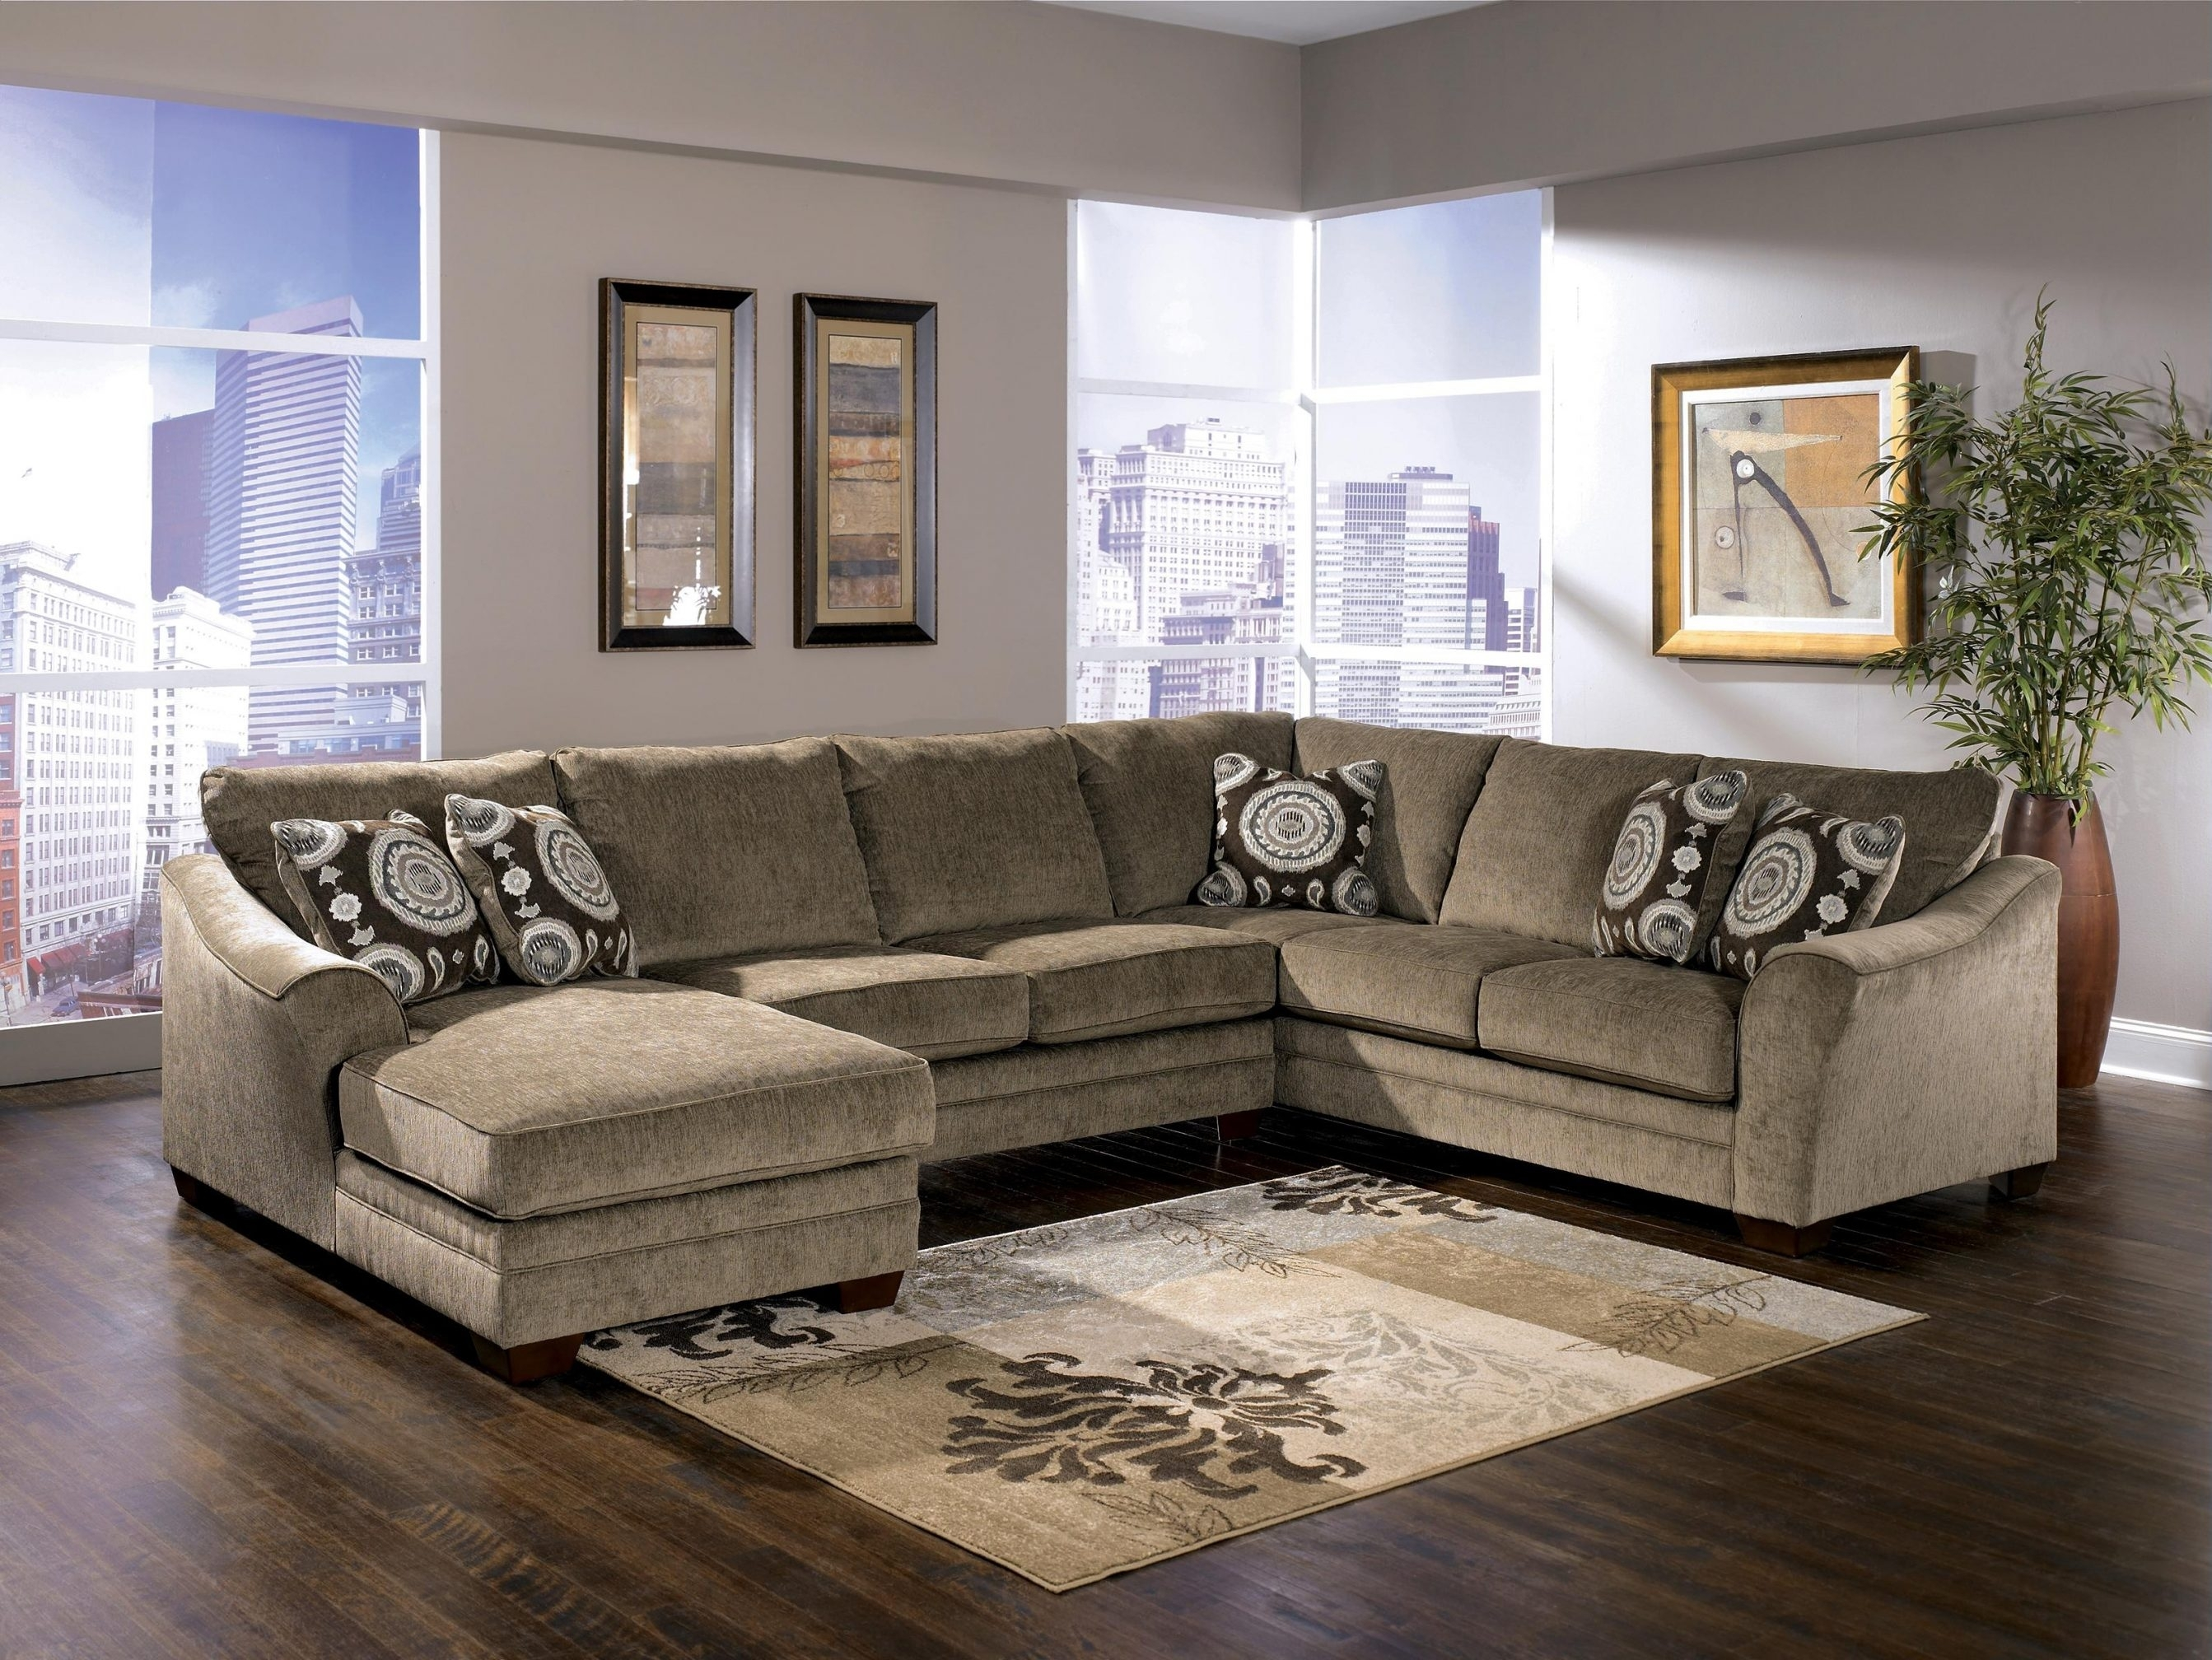 10 Choices Of Knoxville Tn Sectional Sofas Sofa Ideas